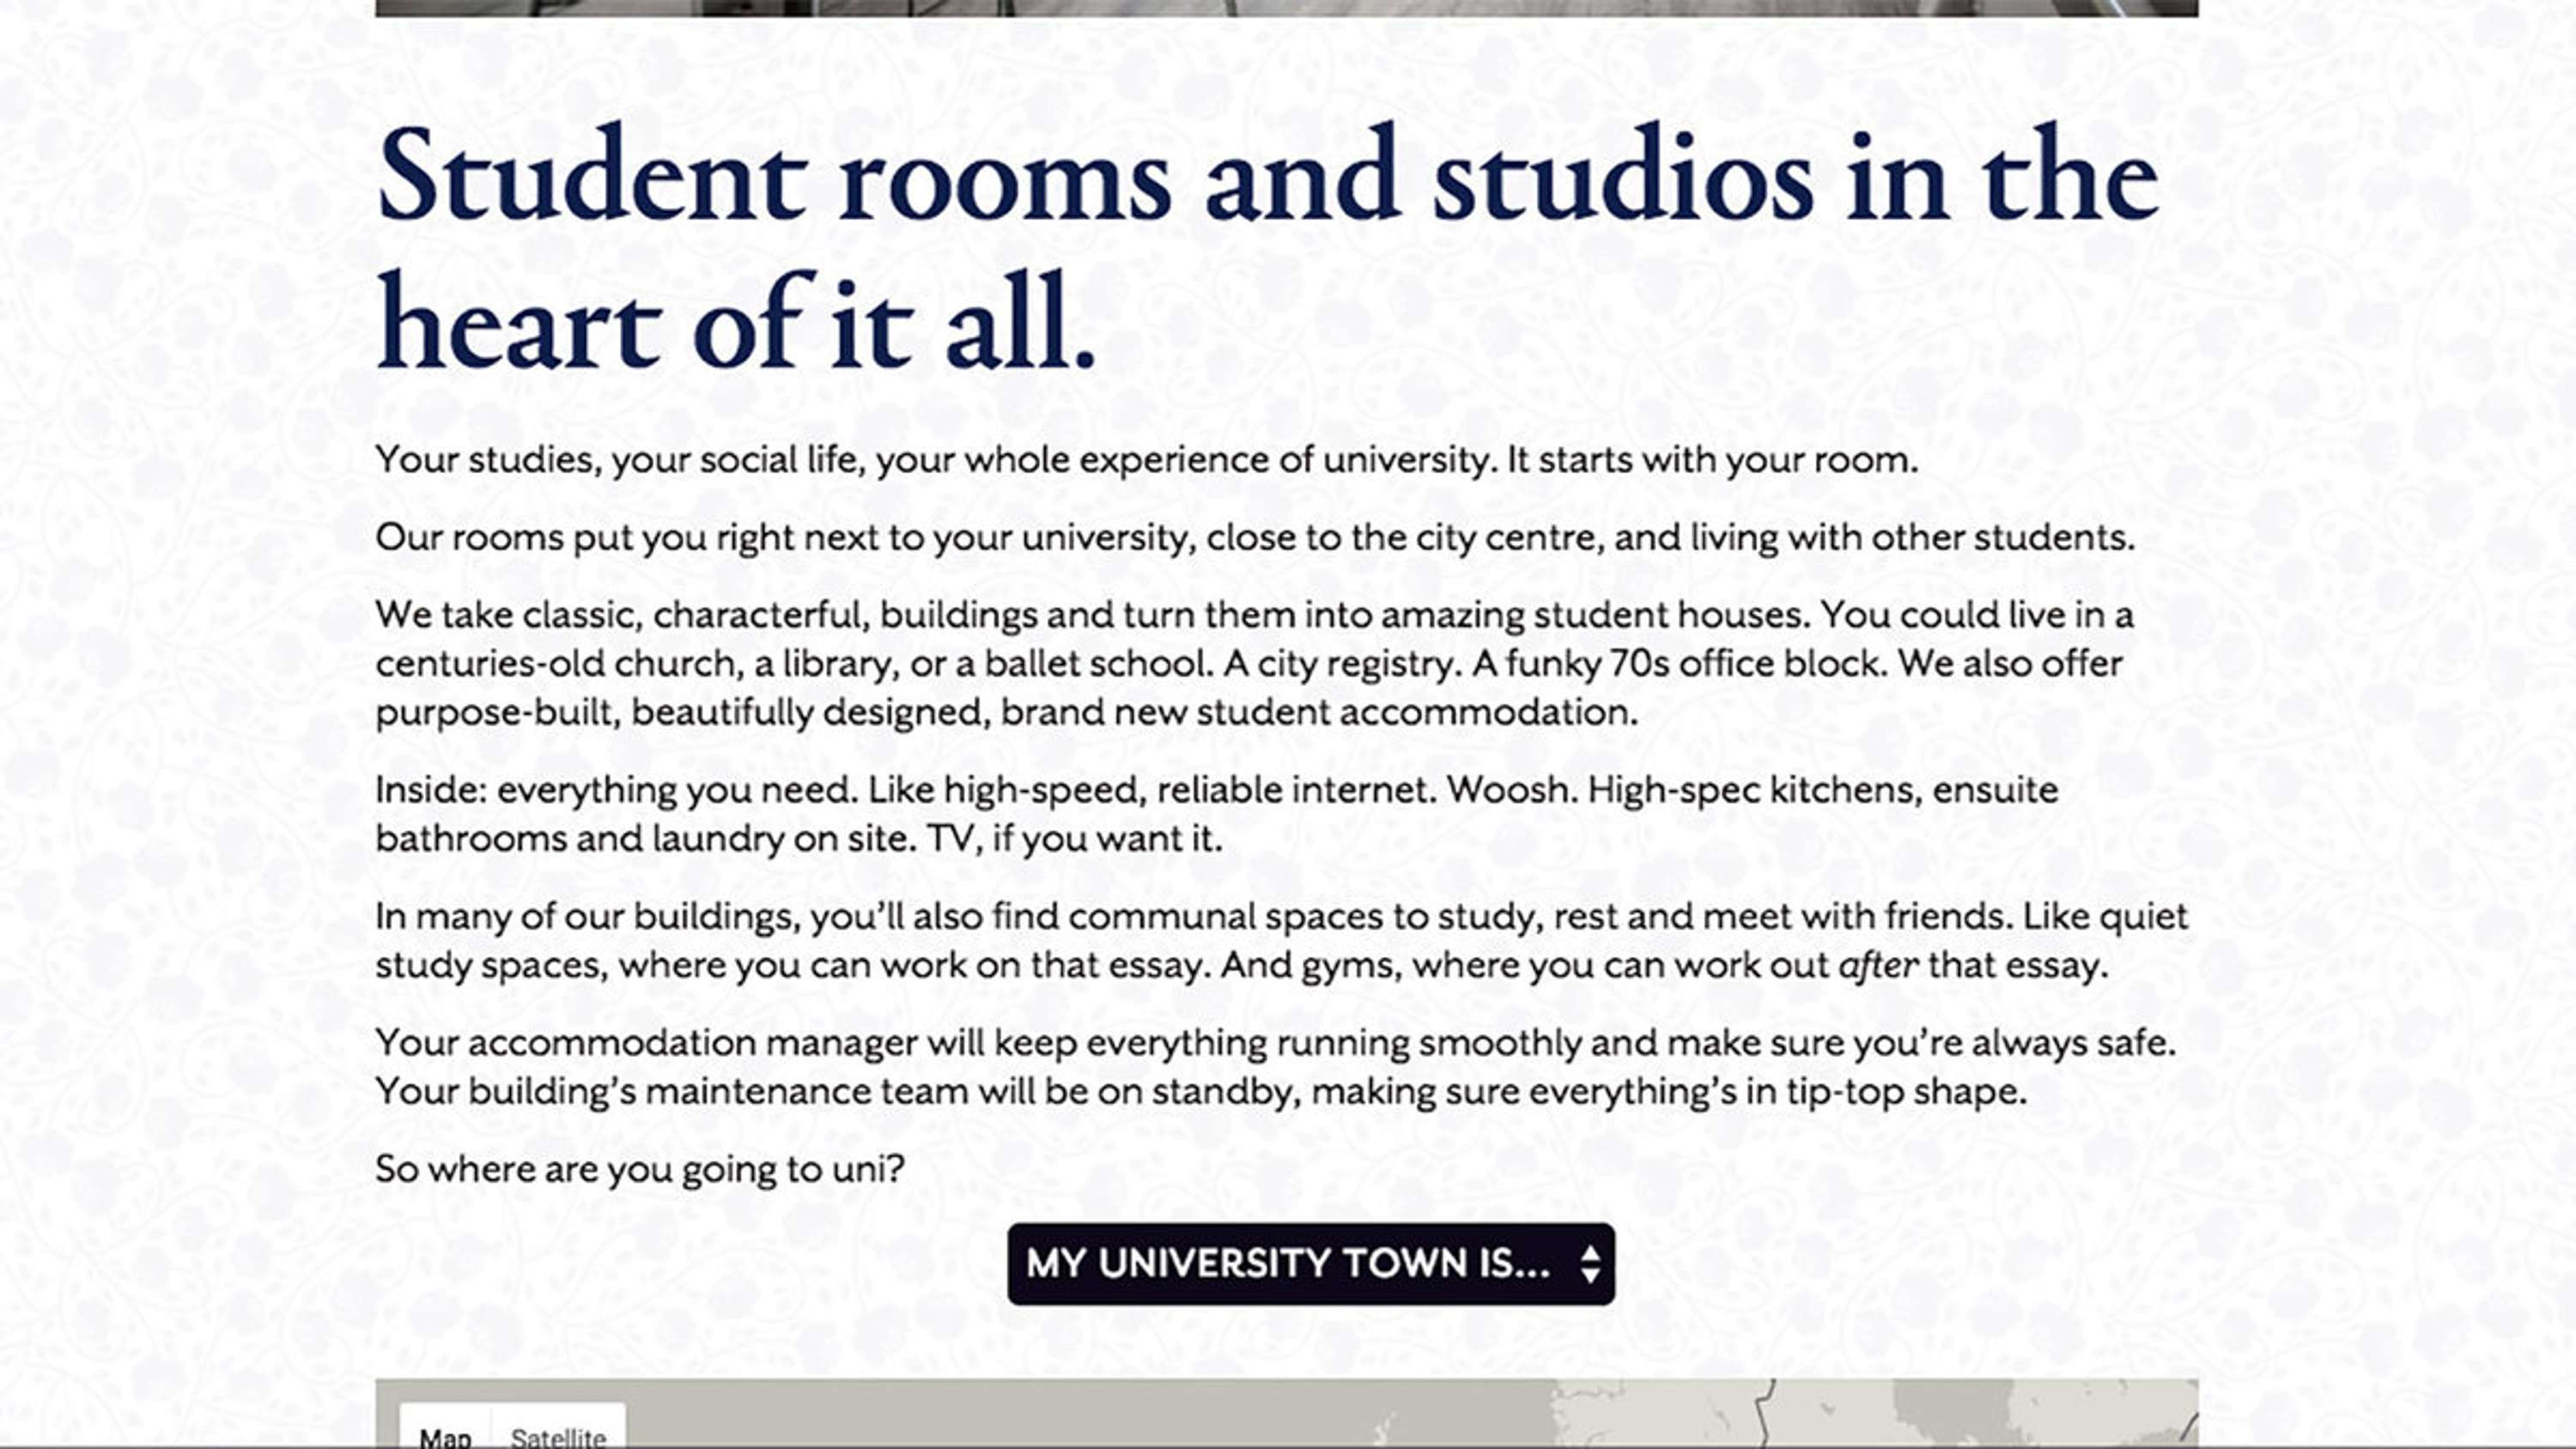 hello student branding the dots we worked someone to brand new student accommodation business hello student